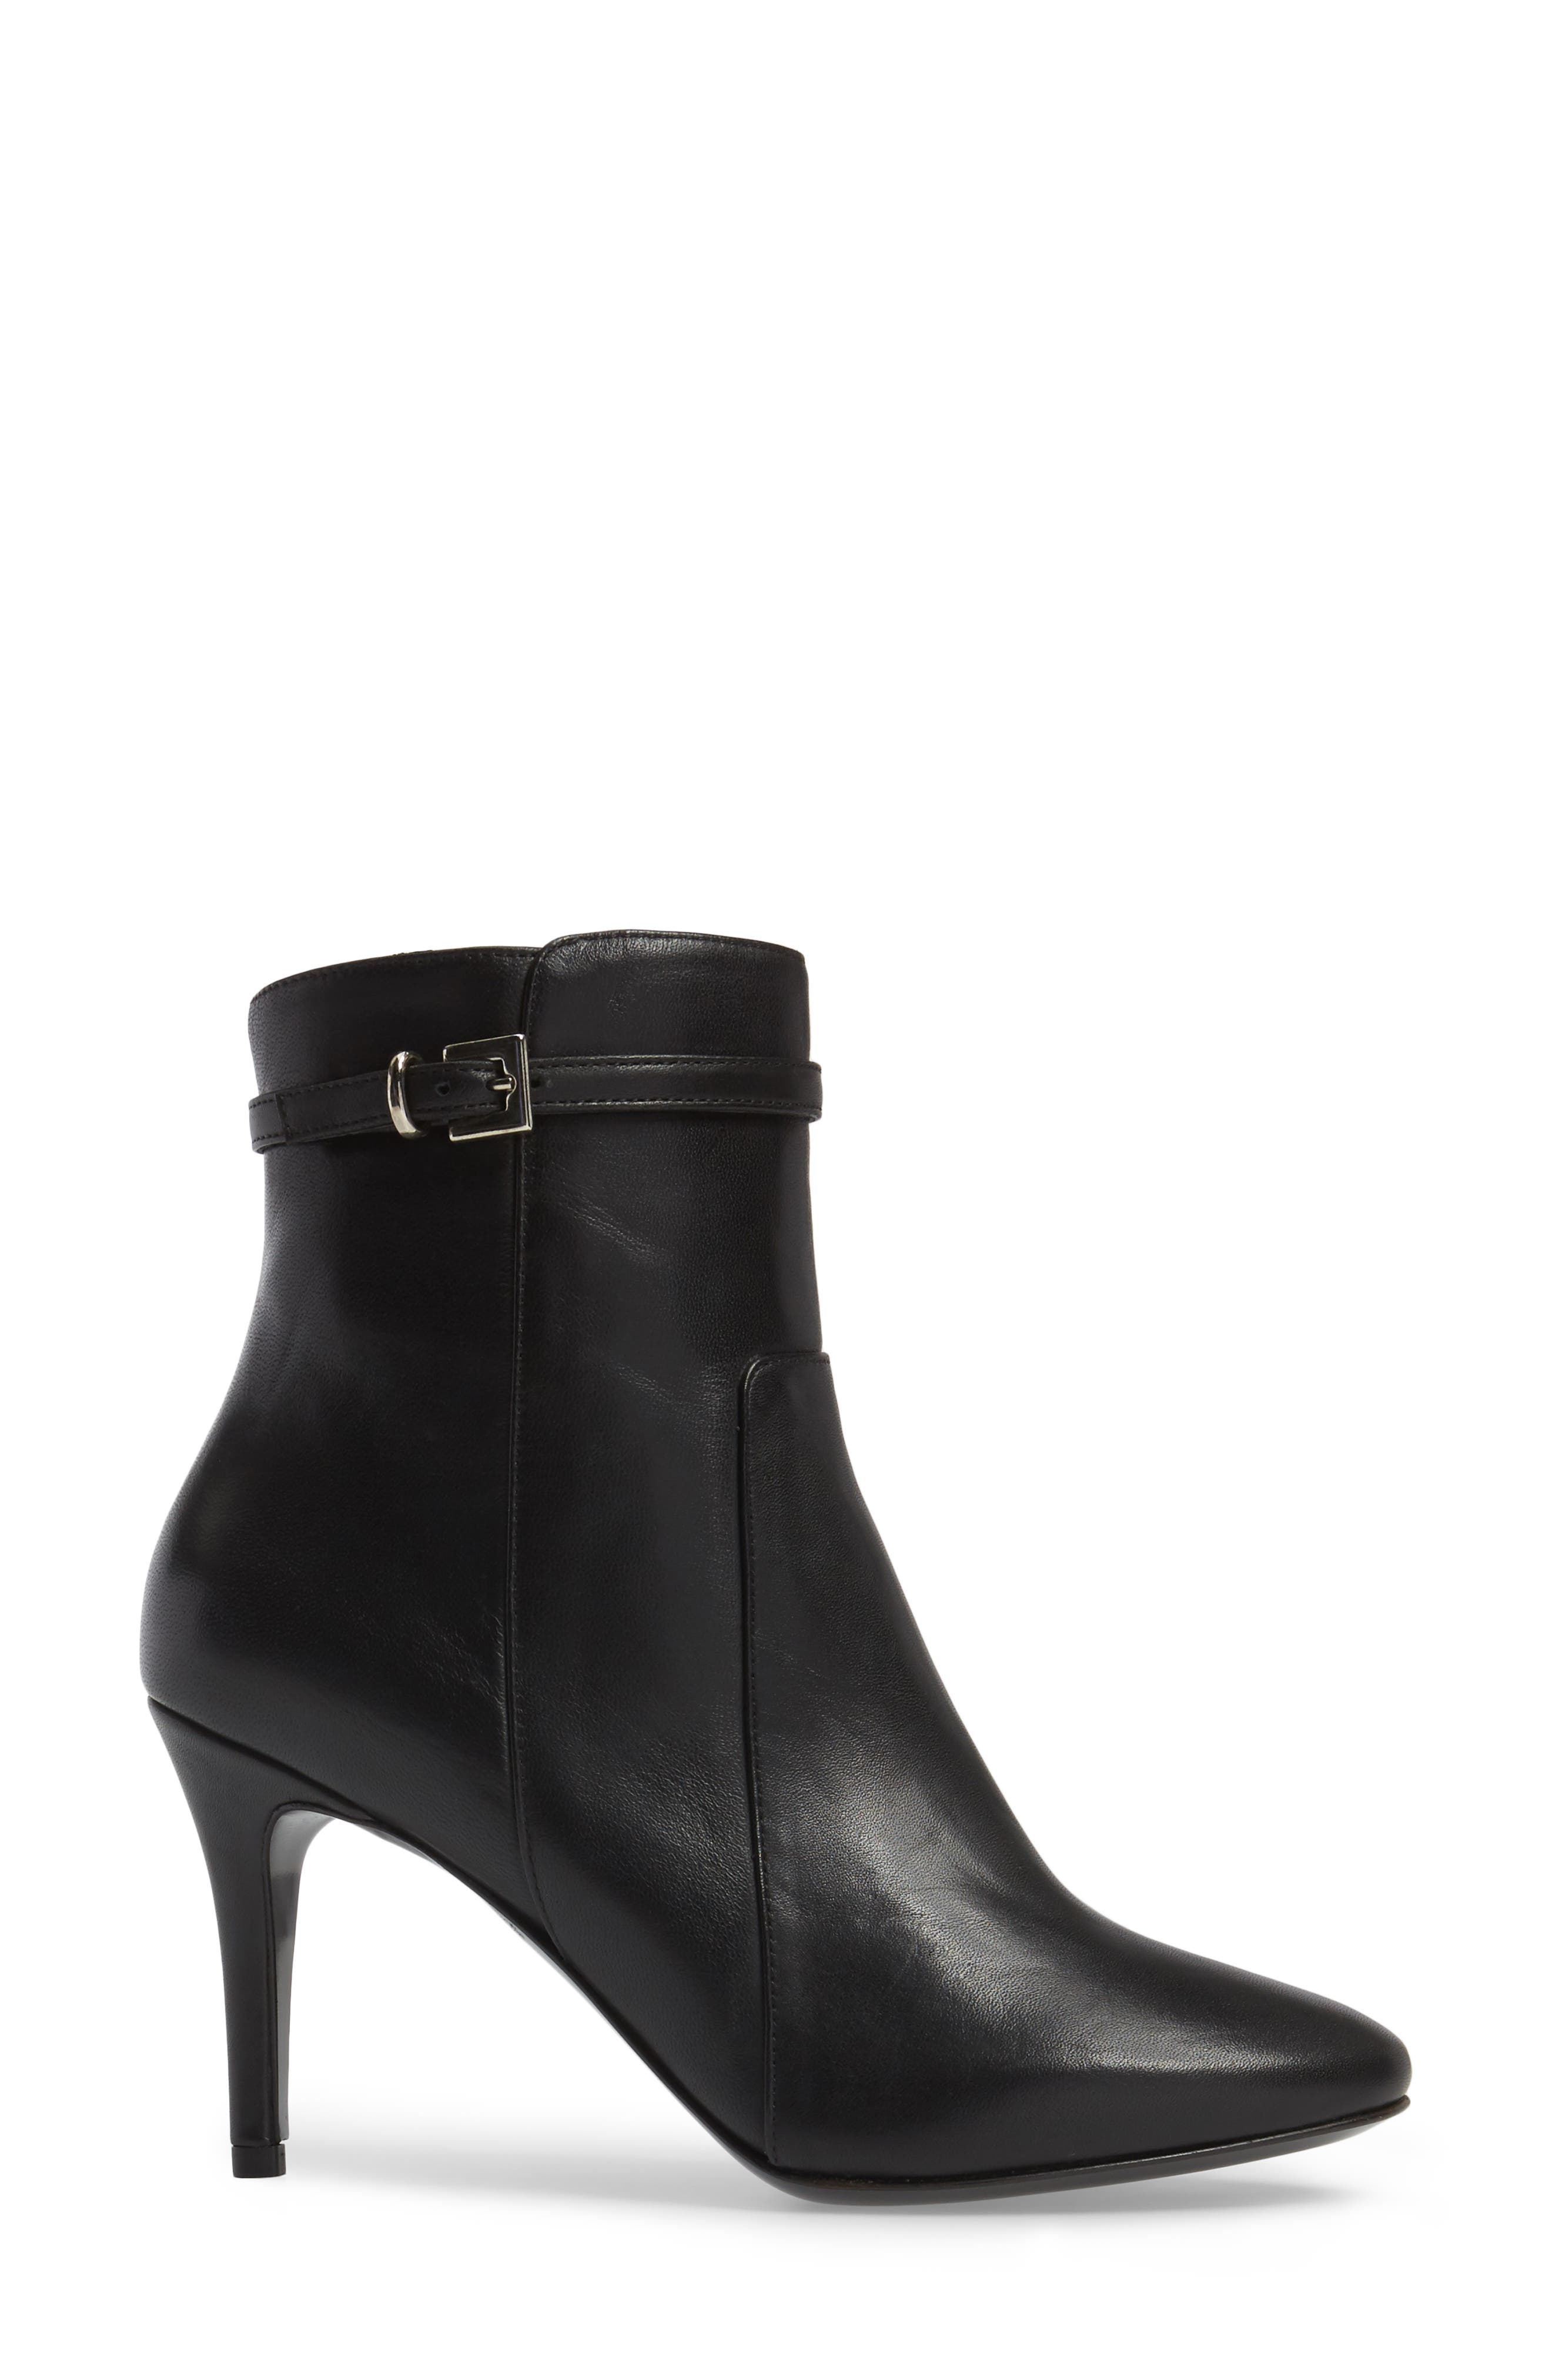 Prism Buckle Strap Bootie,                             Alternate thumbnail 3, color,                             001